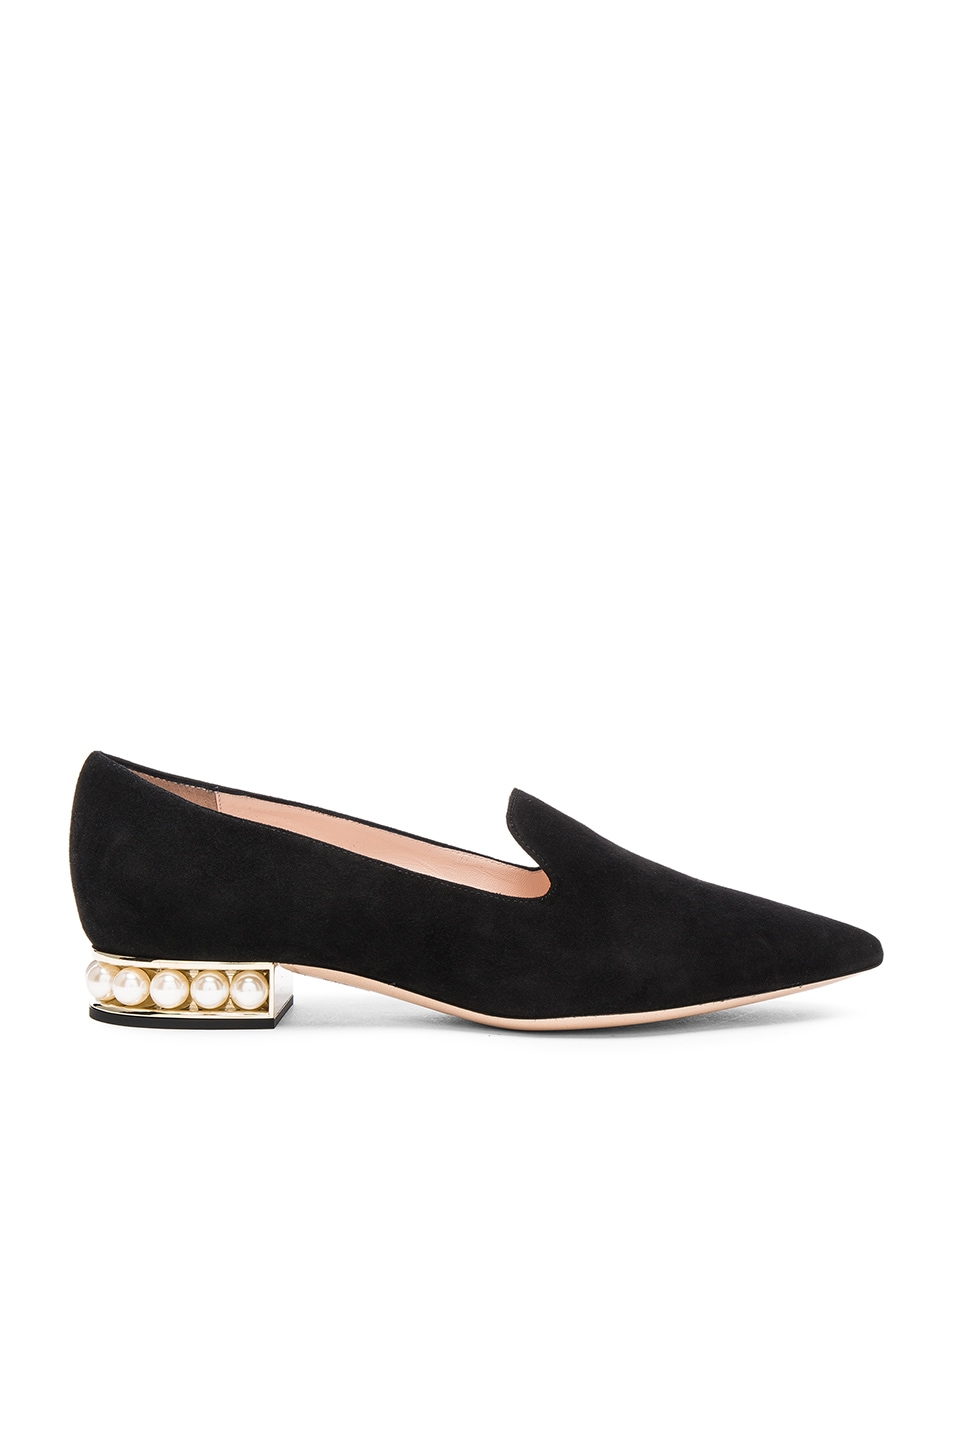 Image 1 of Nicholas Kirkwood Suede Casati Pearl Loafers in Black